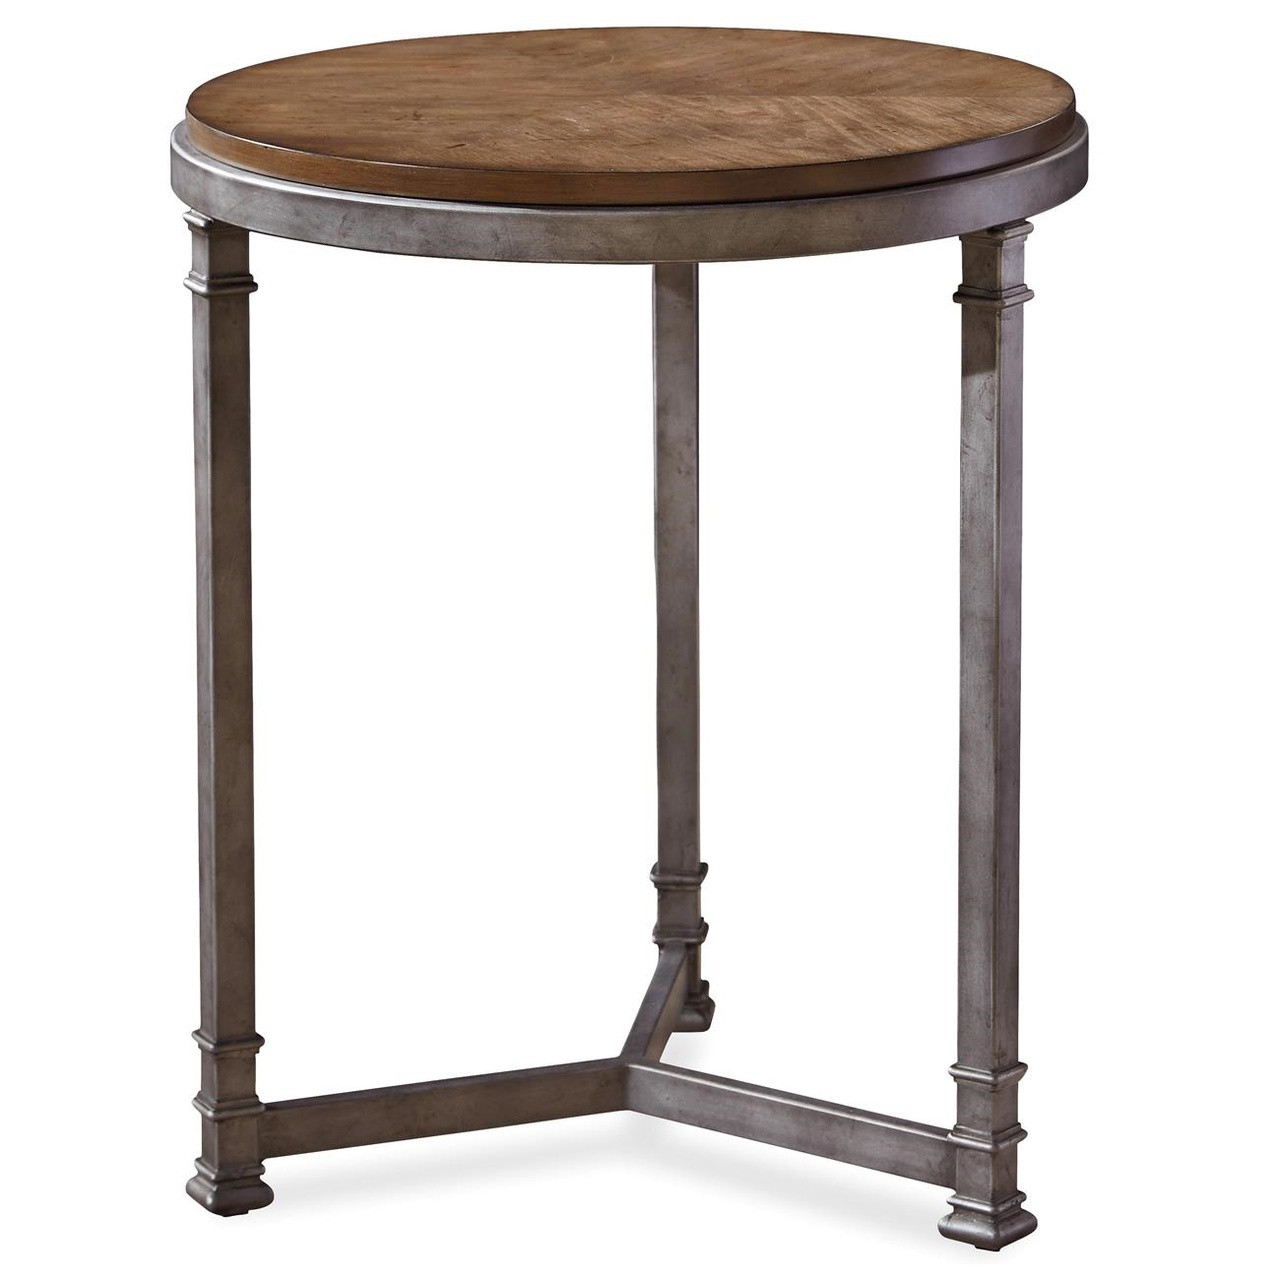 Wood And Metal Side Tables Maison Industrial Metal Leg 43 Wood Round Side Table Zin Home